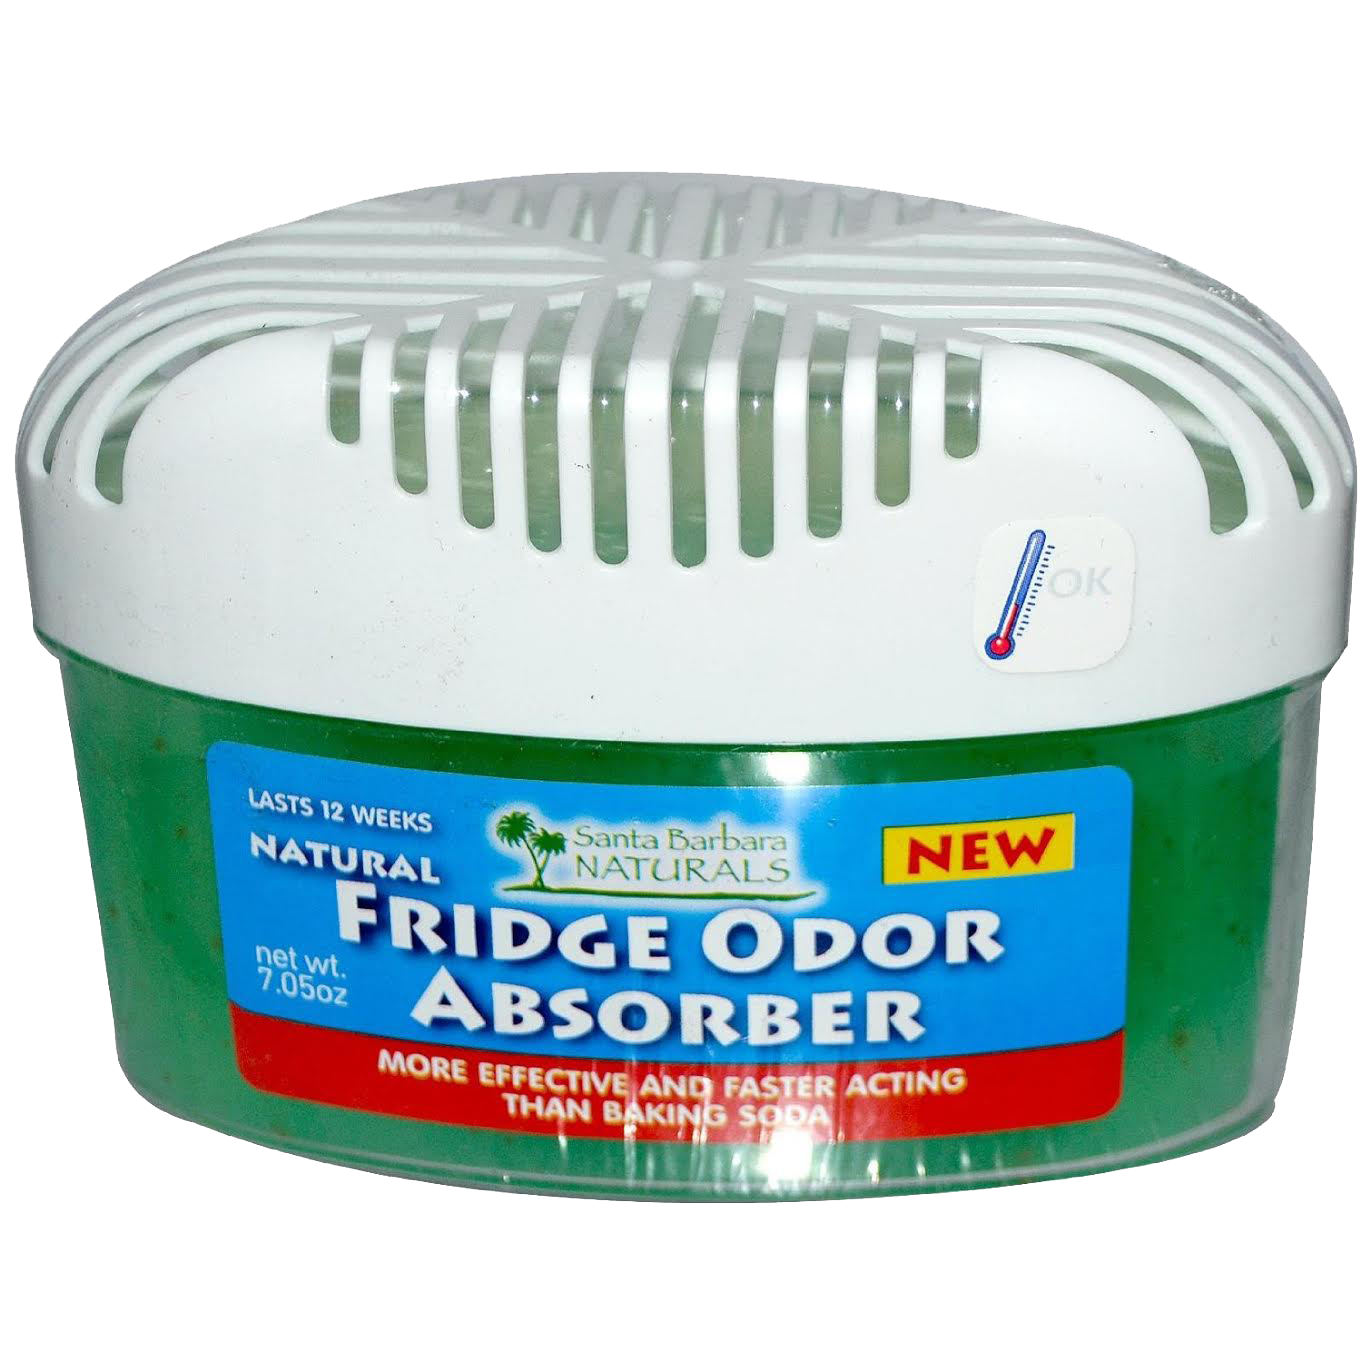 Fridge Odor Absorber (Case of 8) | Santa Barbara Naturals